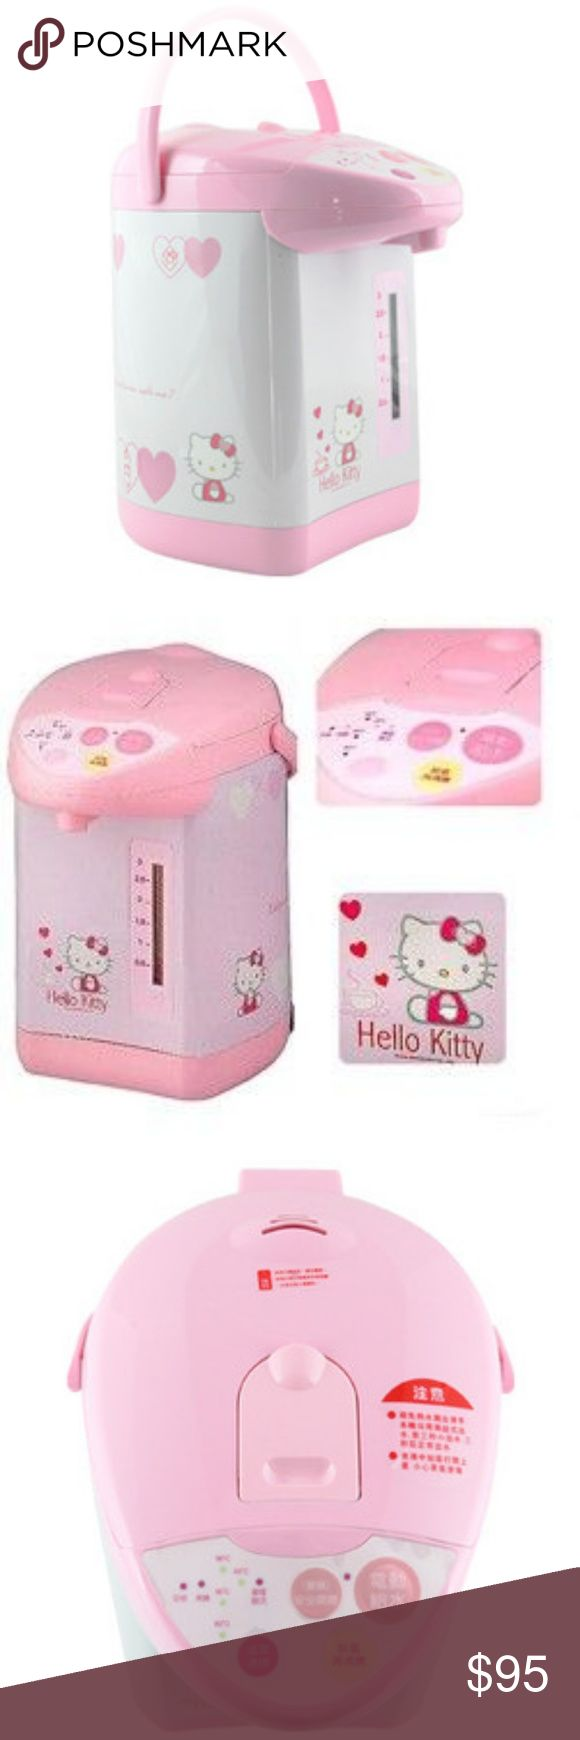 San Rio Hello Kitty Mini Fridge/ Heater Mini fridge San Rio hello kitty mini fridge with handle for travel to dorm or beach in the house in office or bedroom.  Never used, still in original box.  A collector item that can either be enjoyed and used now or saved and accumulate more worth. ABLE TO BE USED COLD OR TO HEAT!! . Feel free to search hello kitty mini fridge and see what the going prices are. For the places that even have them in Stock. *DOES NOT COME WITH CORDS*!!. The cords are…